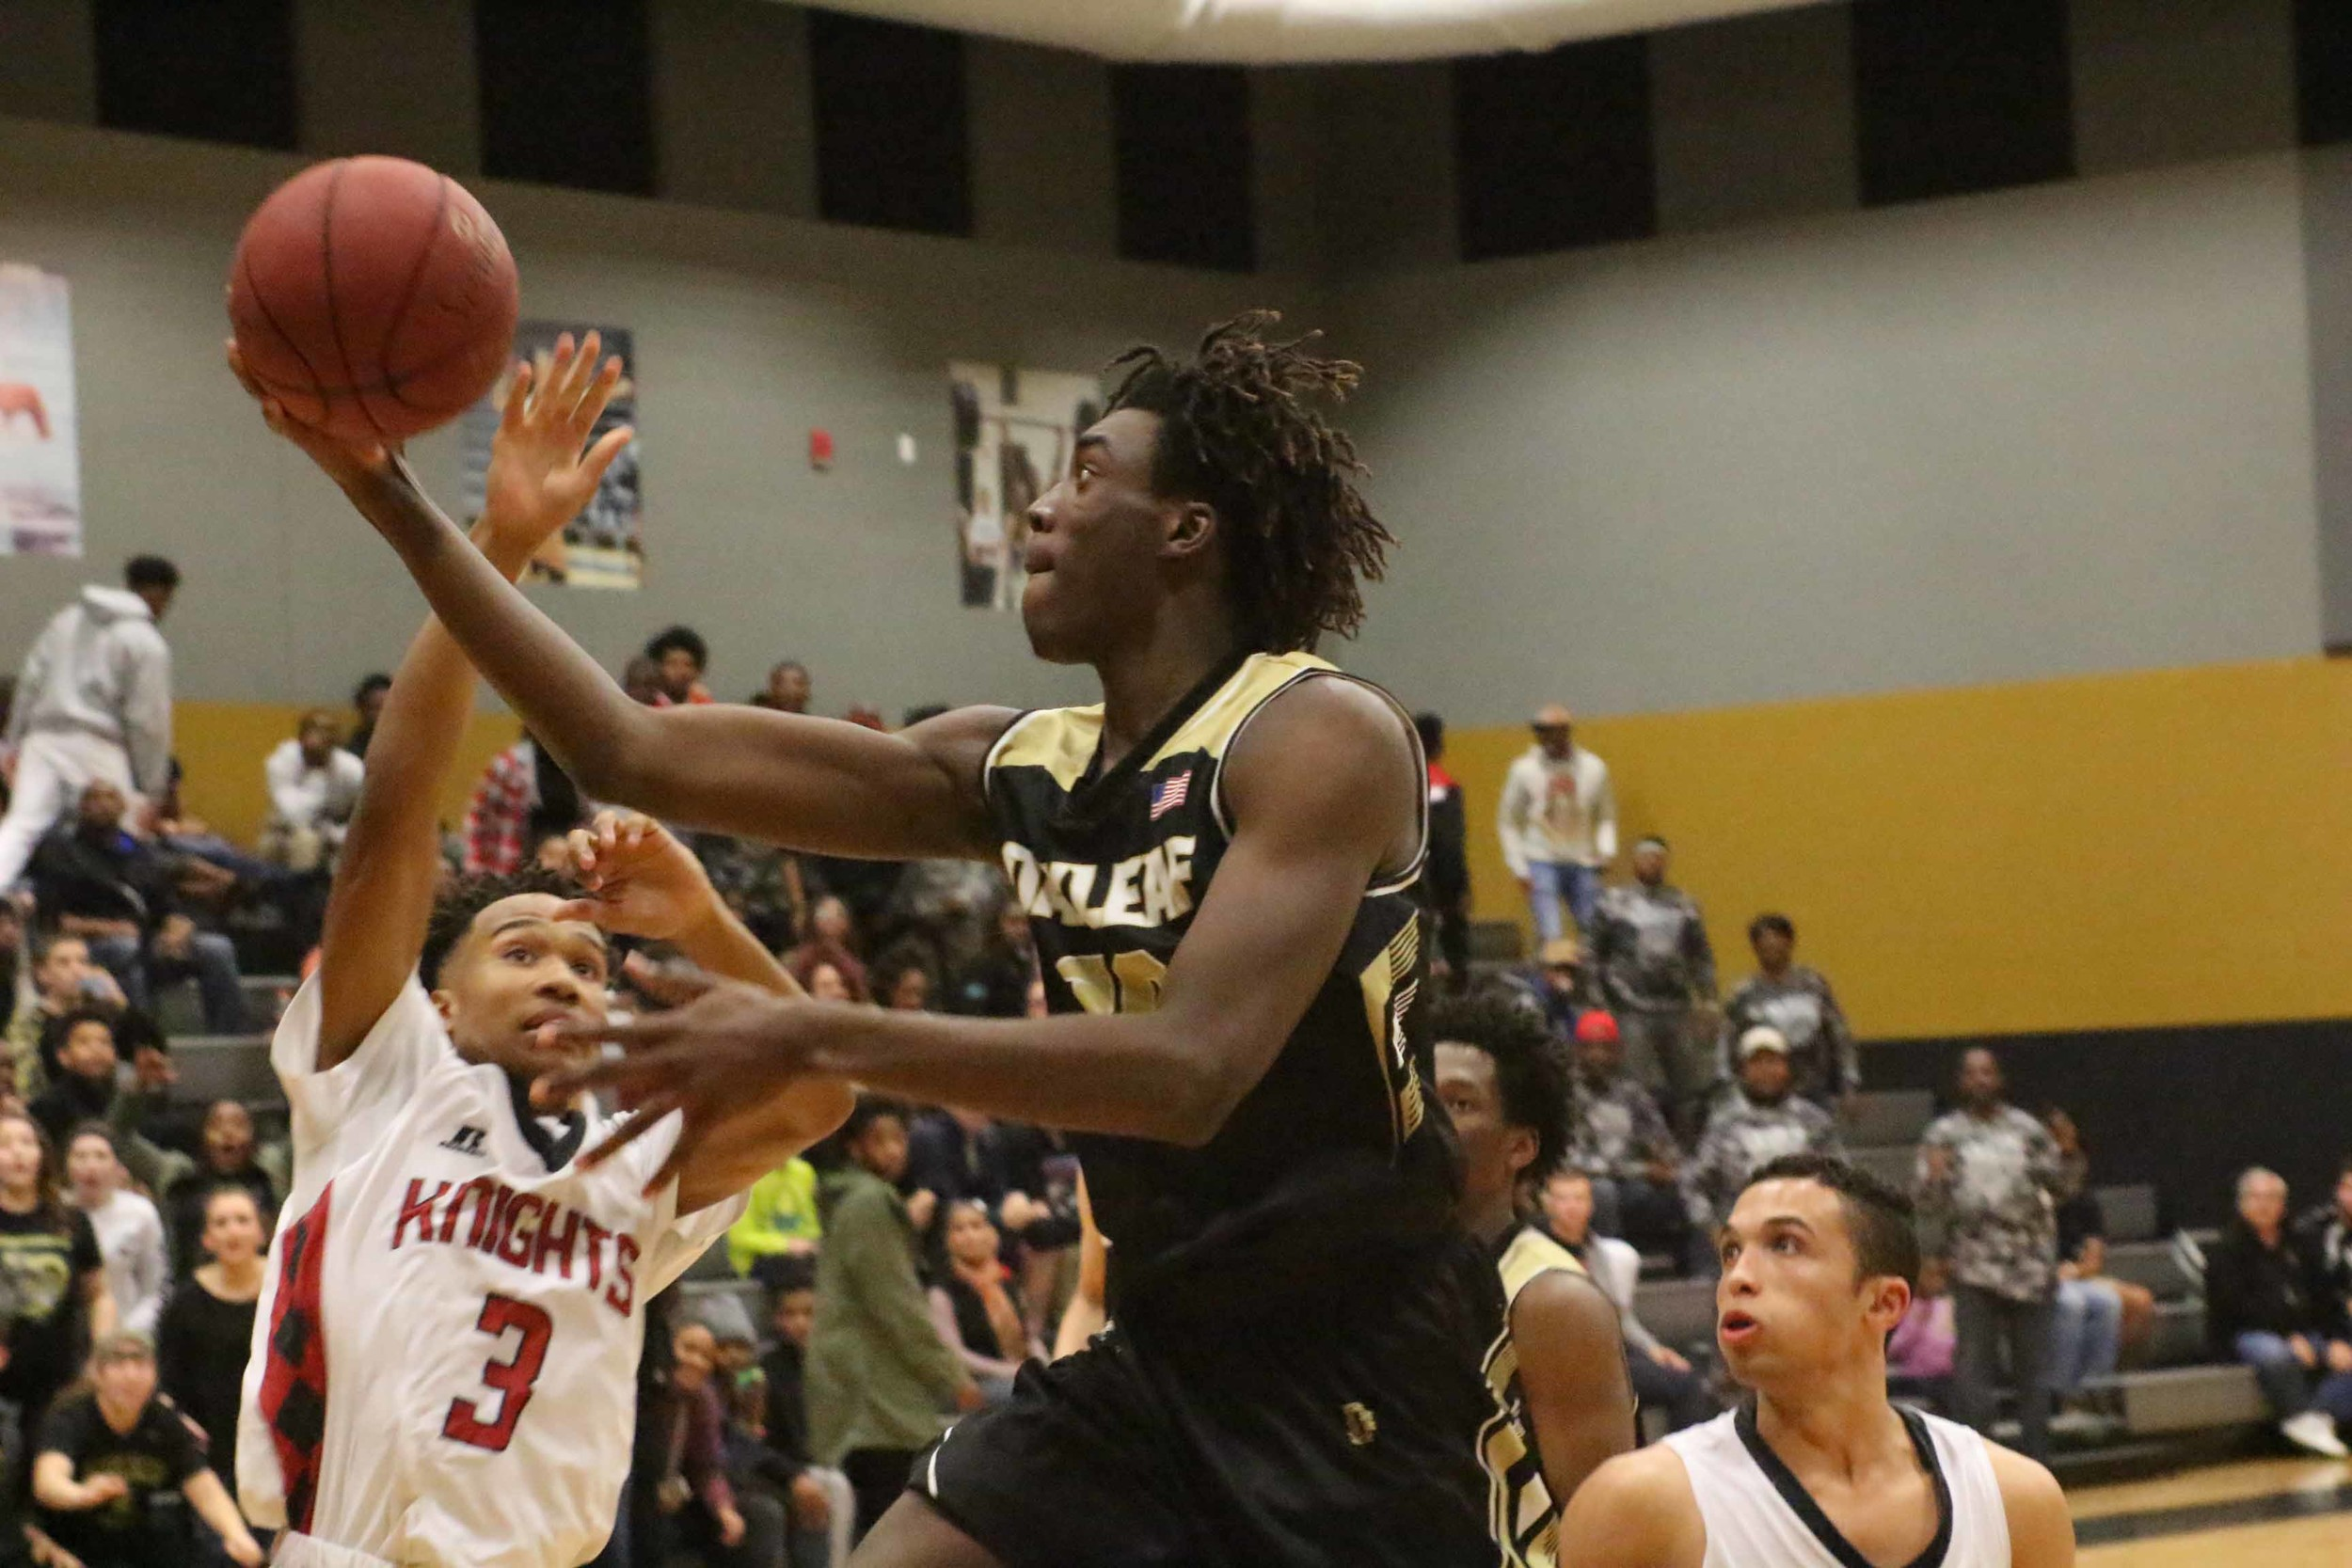 Oakleaf High sophomore Nassir Little made a big splash as a freshman then came on strong this year as a shot blocker and rebounder for the district champion Knights. Little has numerous college offers including the University of Florida.